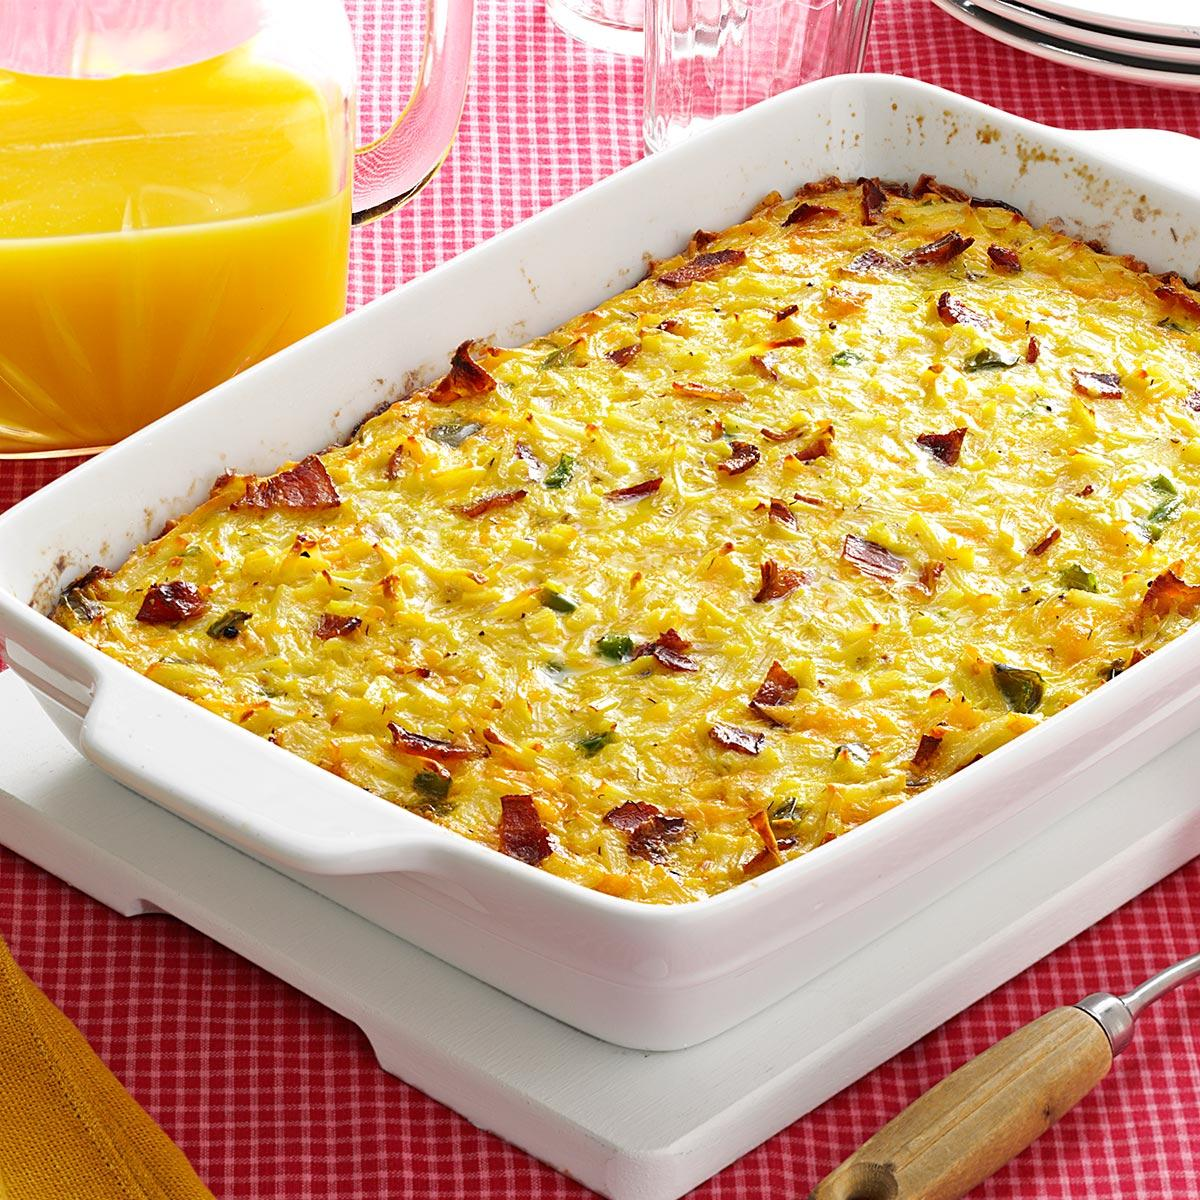 Hams Egg Cheesy Bread Roll: Cheesy Hash Brown Egg Casserole With Bacon Recipe